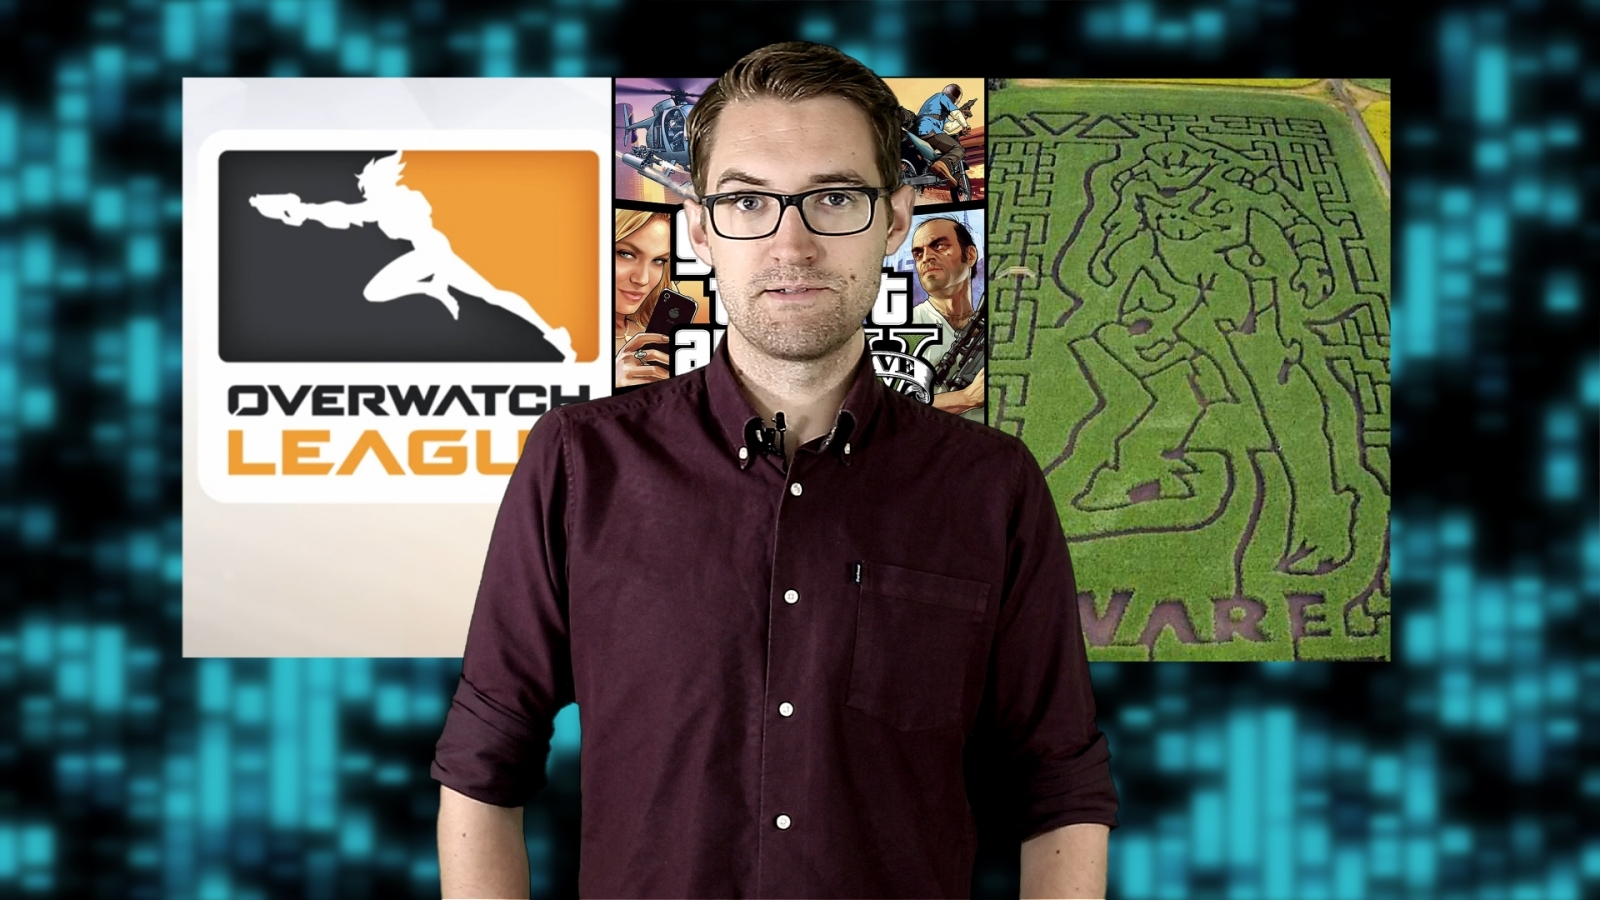 Video game news round-up: GTA 6, Overwatch League pay and BioWare's corny Anthem maze